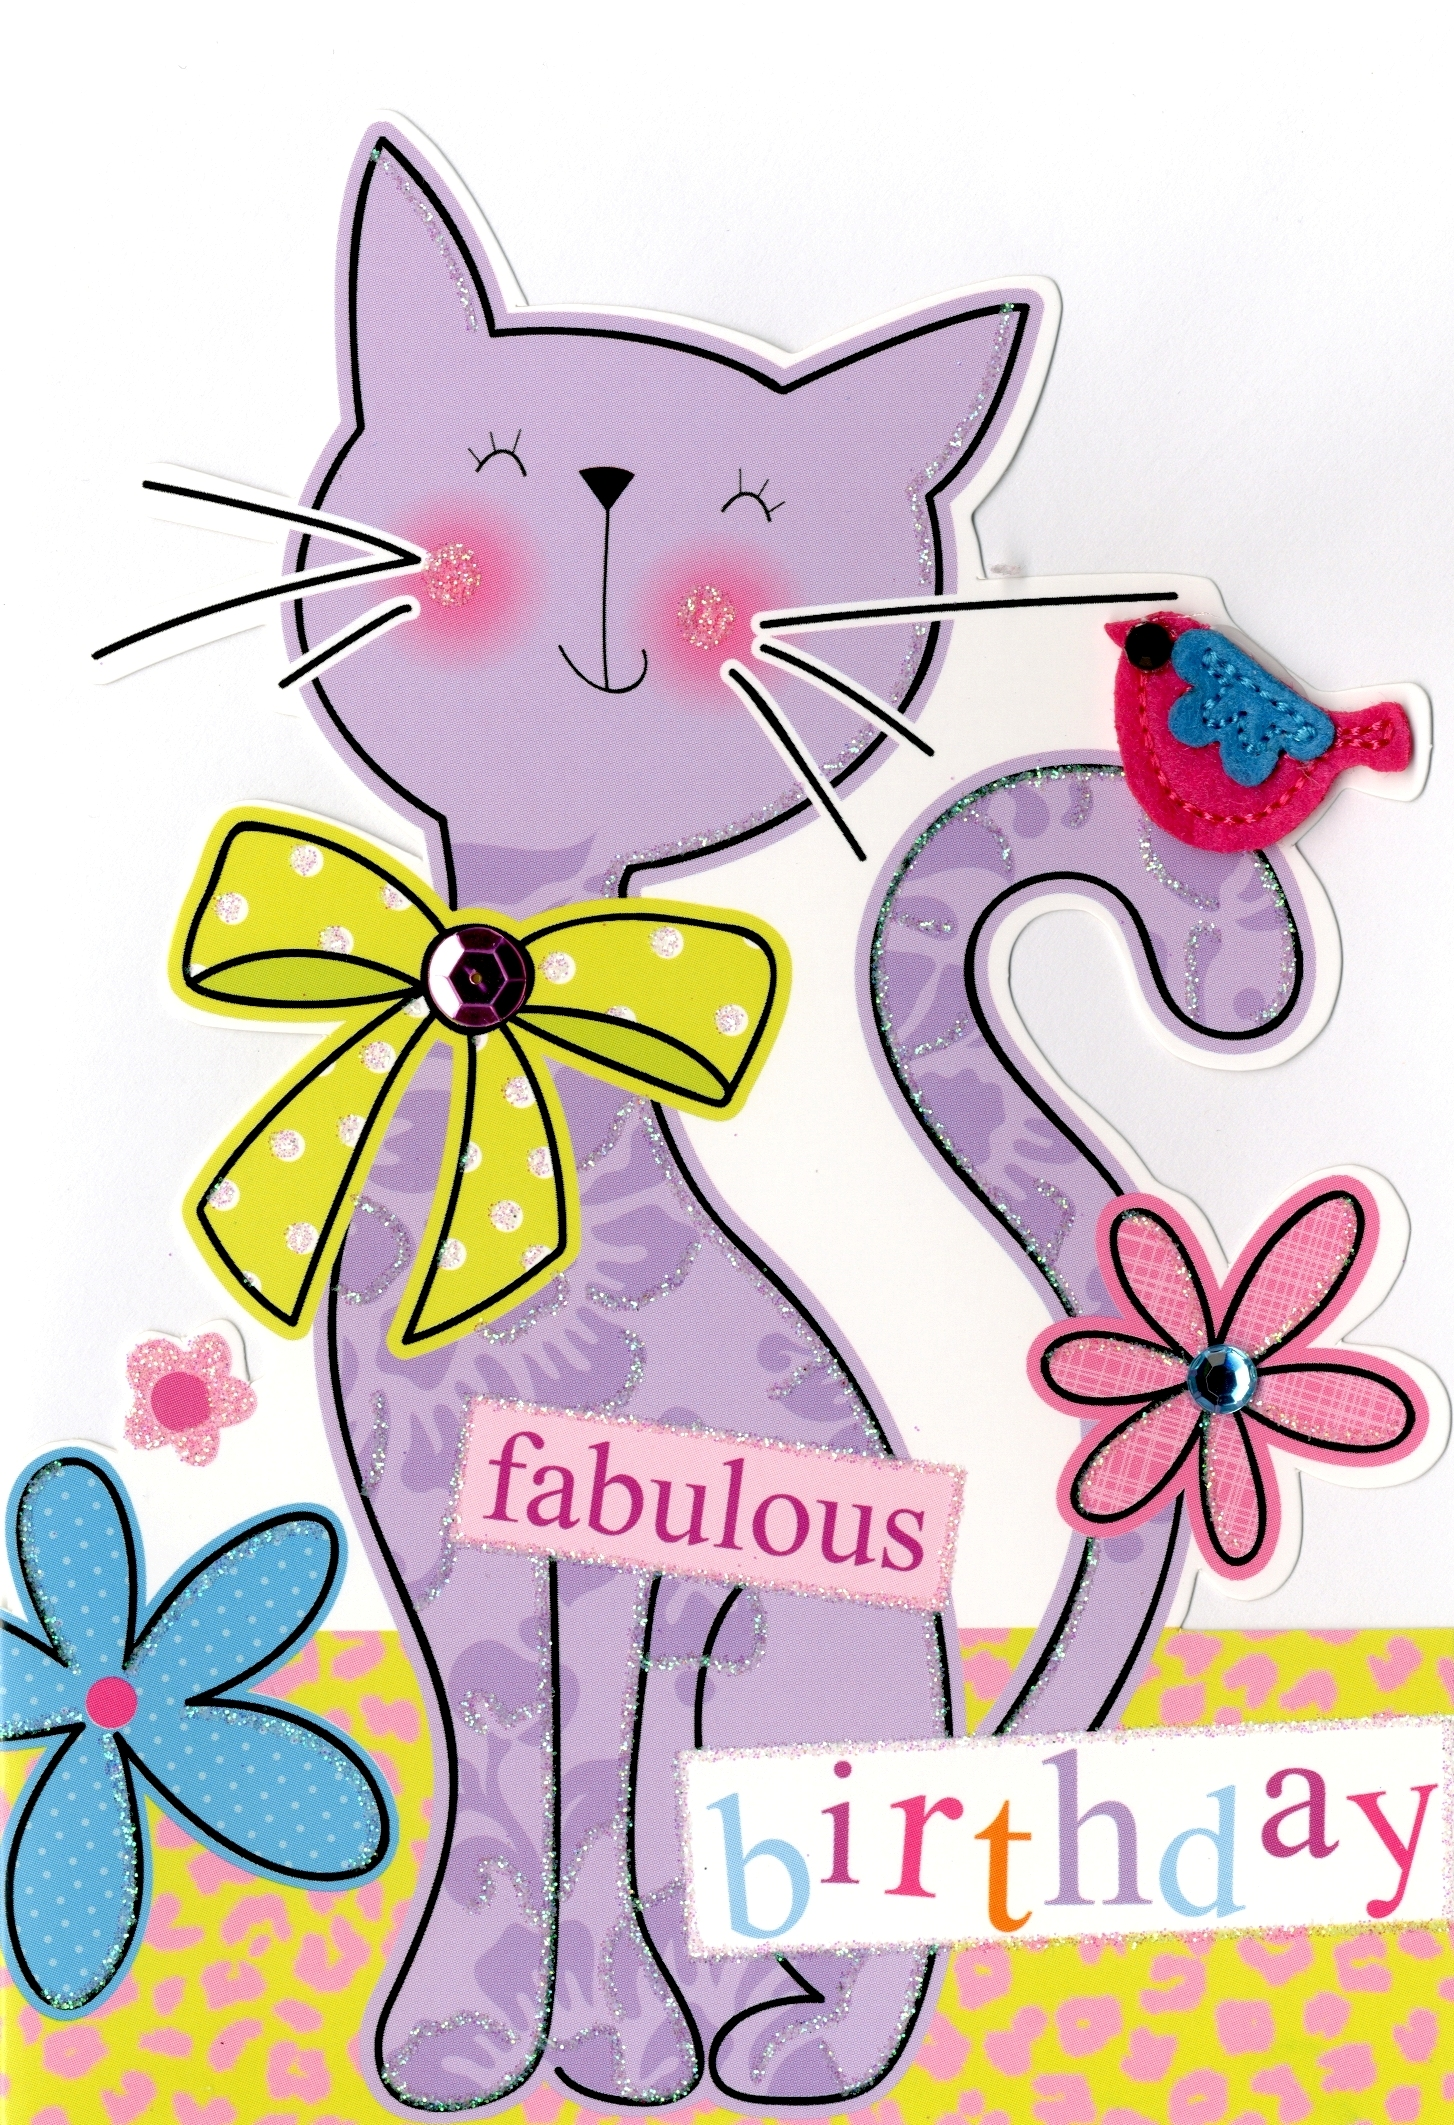 Cat Fabulous Birthday Greeting Card